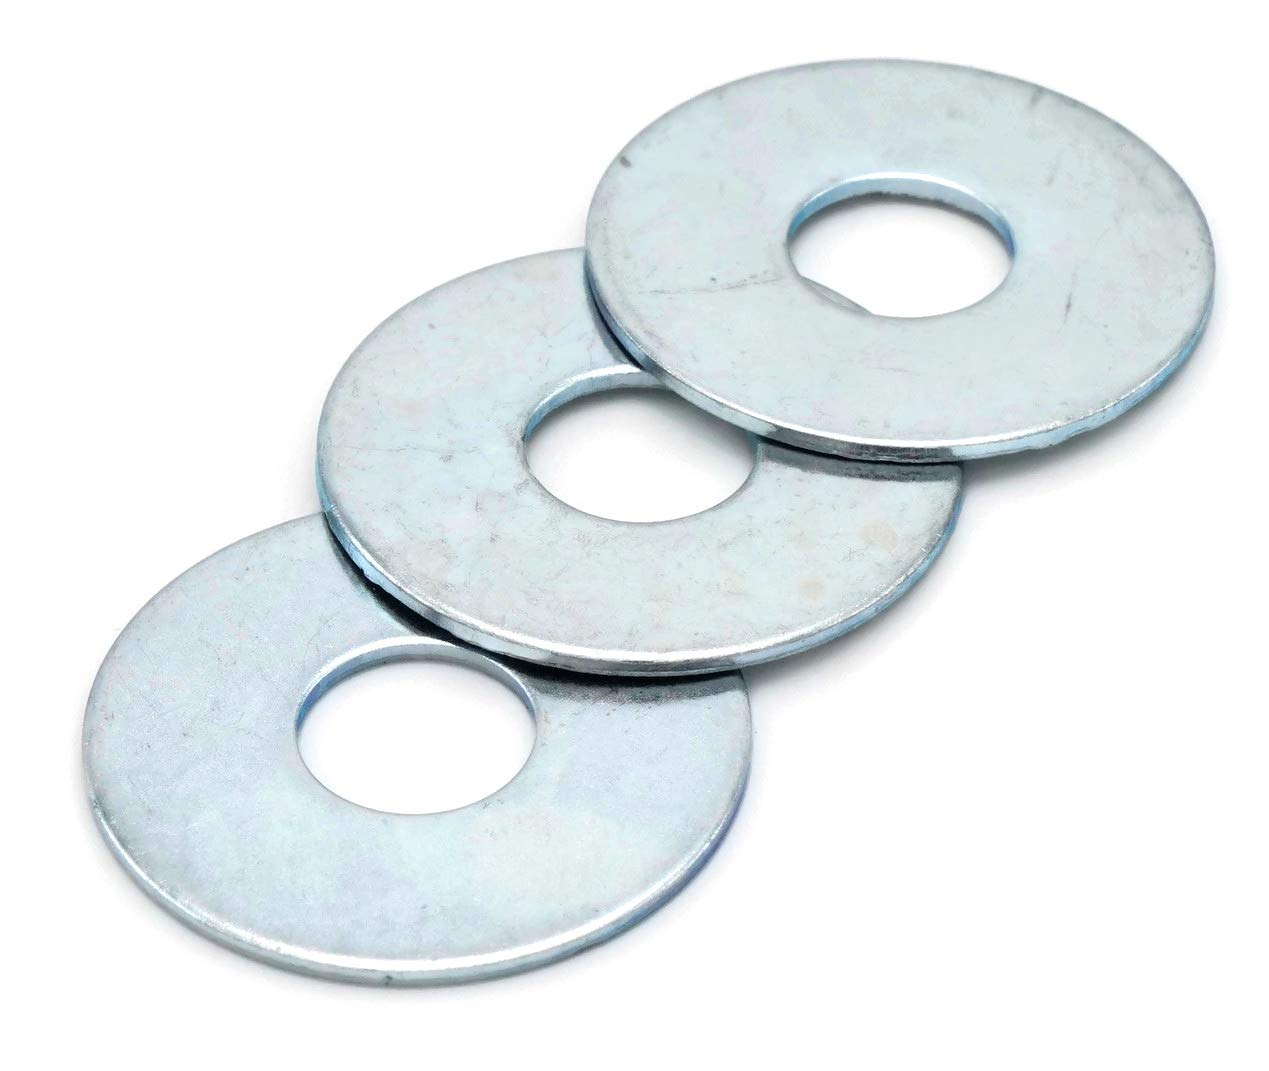 """100 3//8X1-1//2 Fender Washers Stainless Steel 3//8/"""" x 1-1//2/"""" Large OD Washers"""